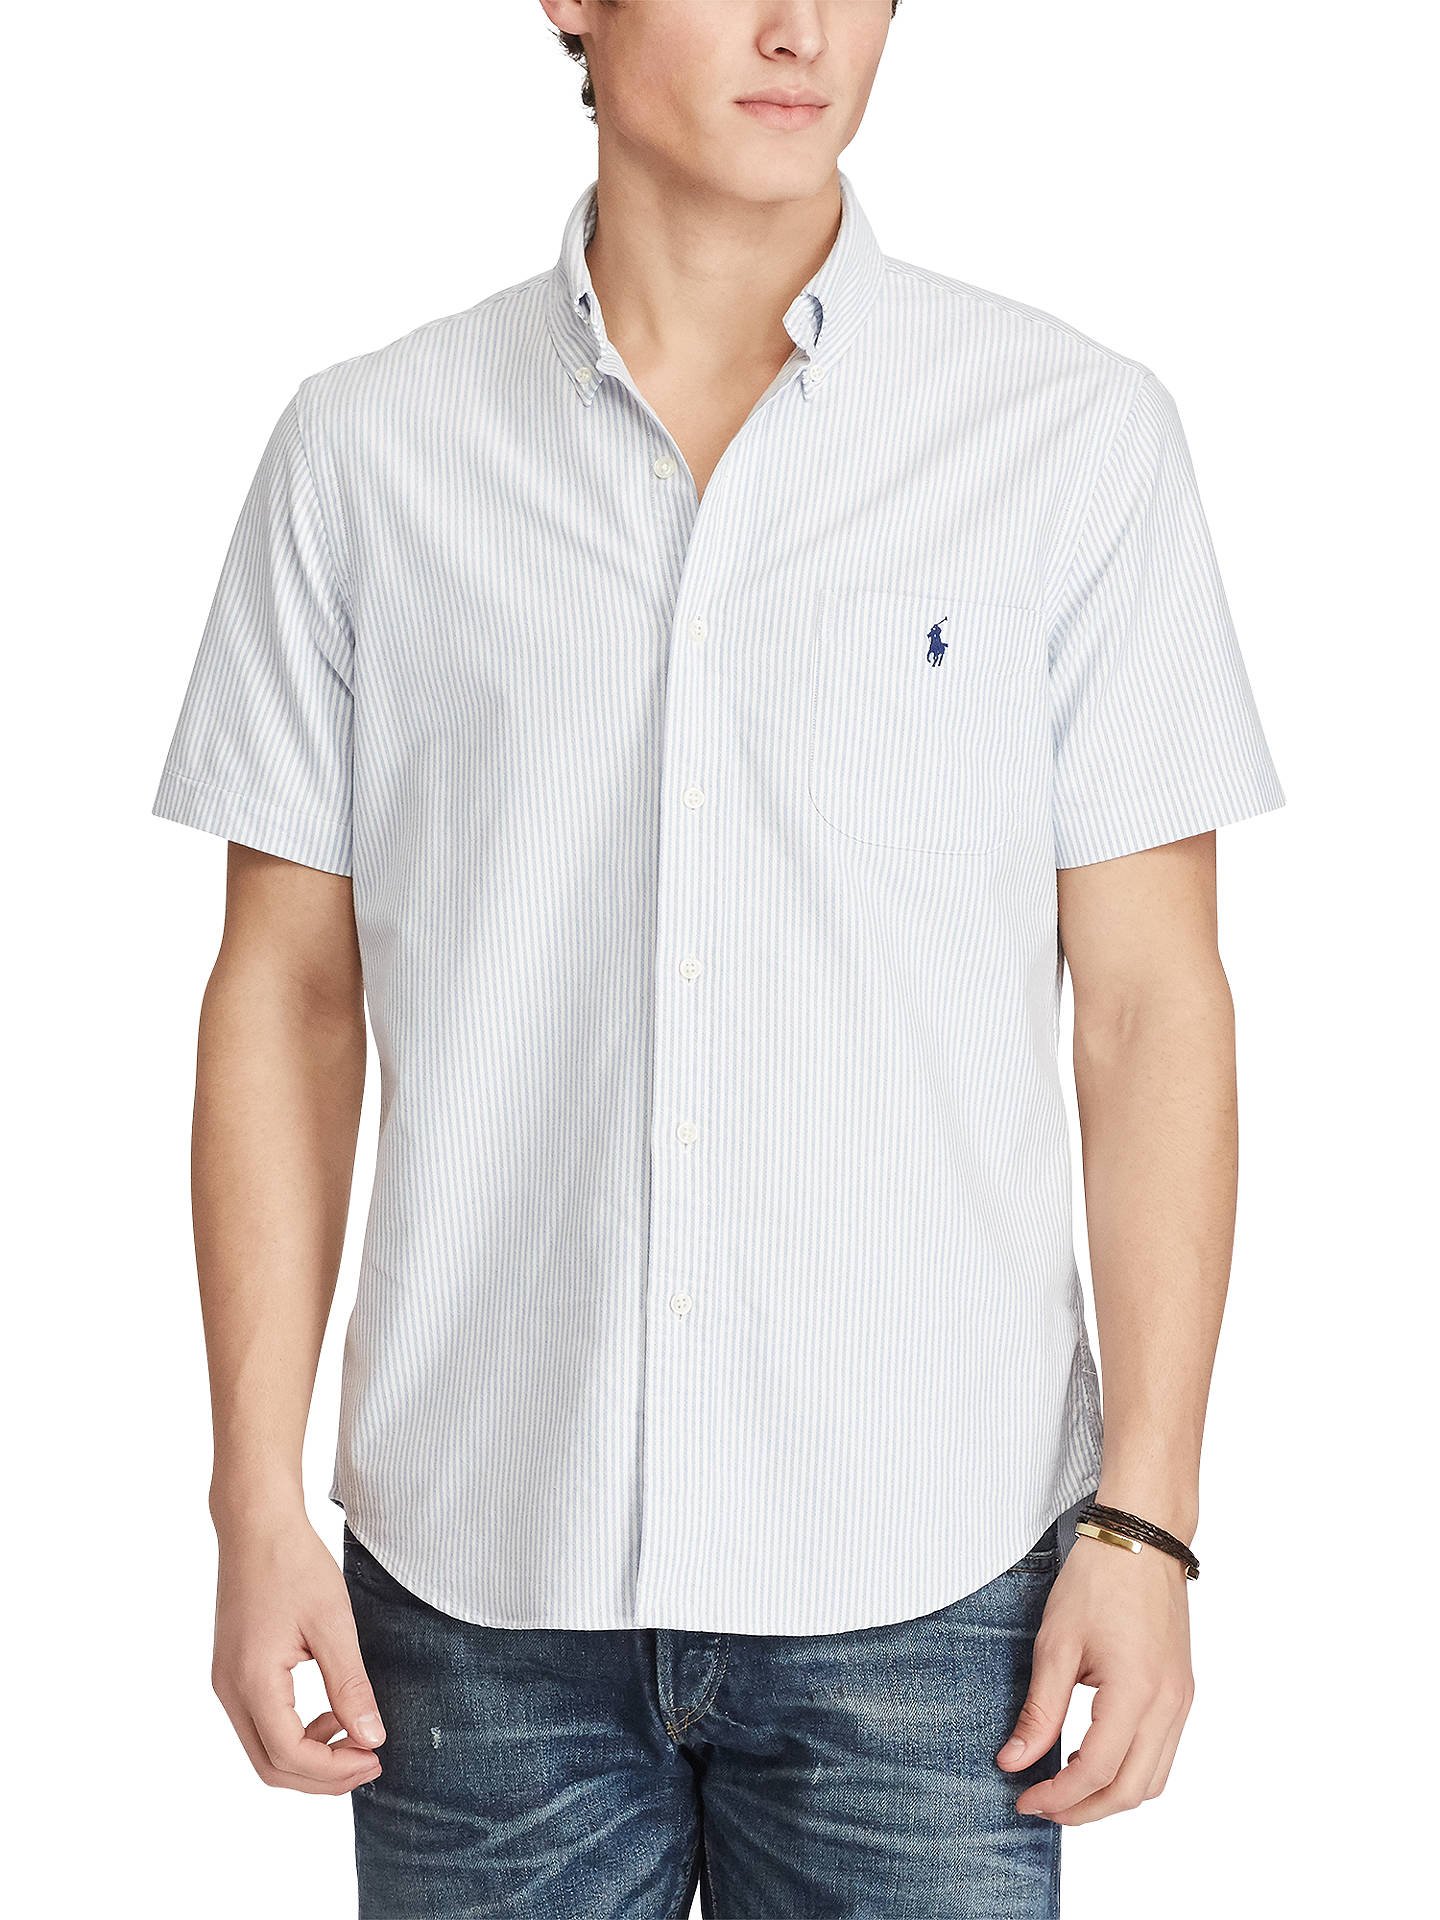 afb77810298a0 Buy Polo Ralph Lauren Standard Fit Short Sleeve Striped Oxford Shirt,  Blue/White, ...